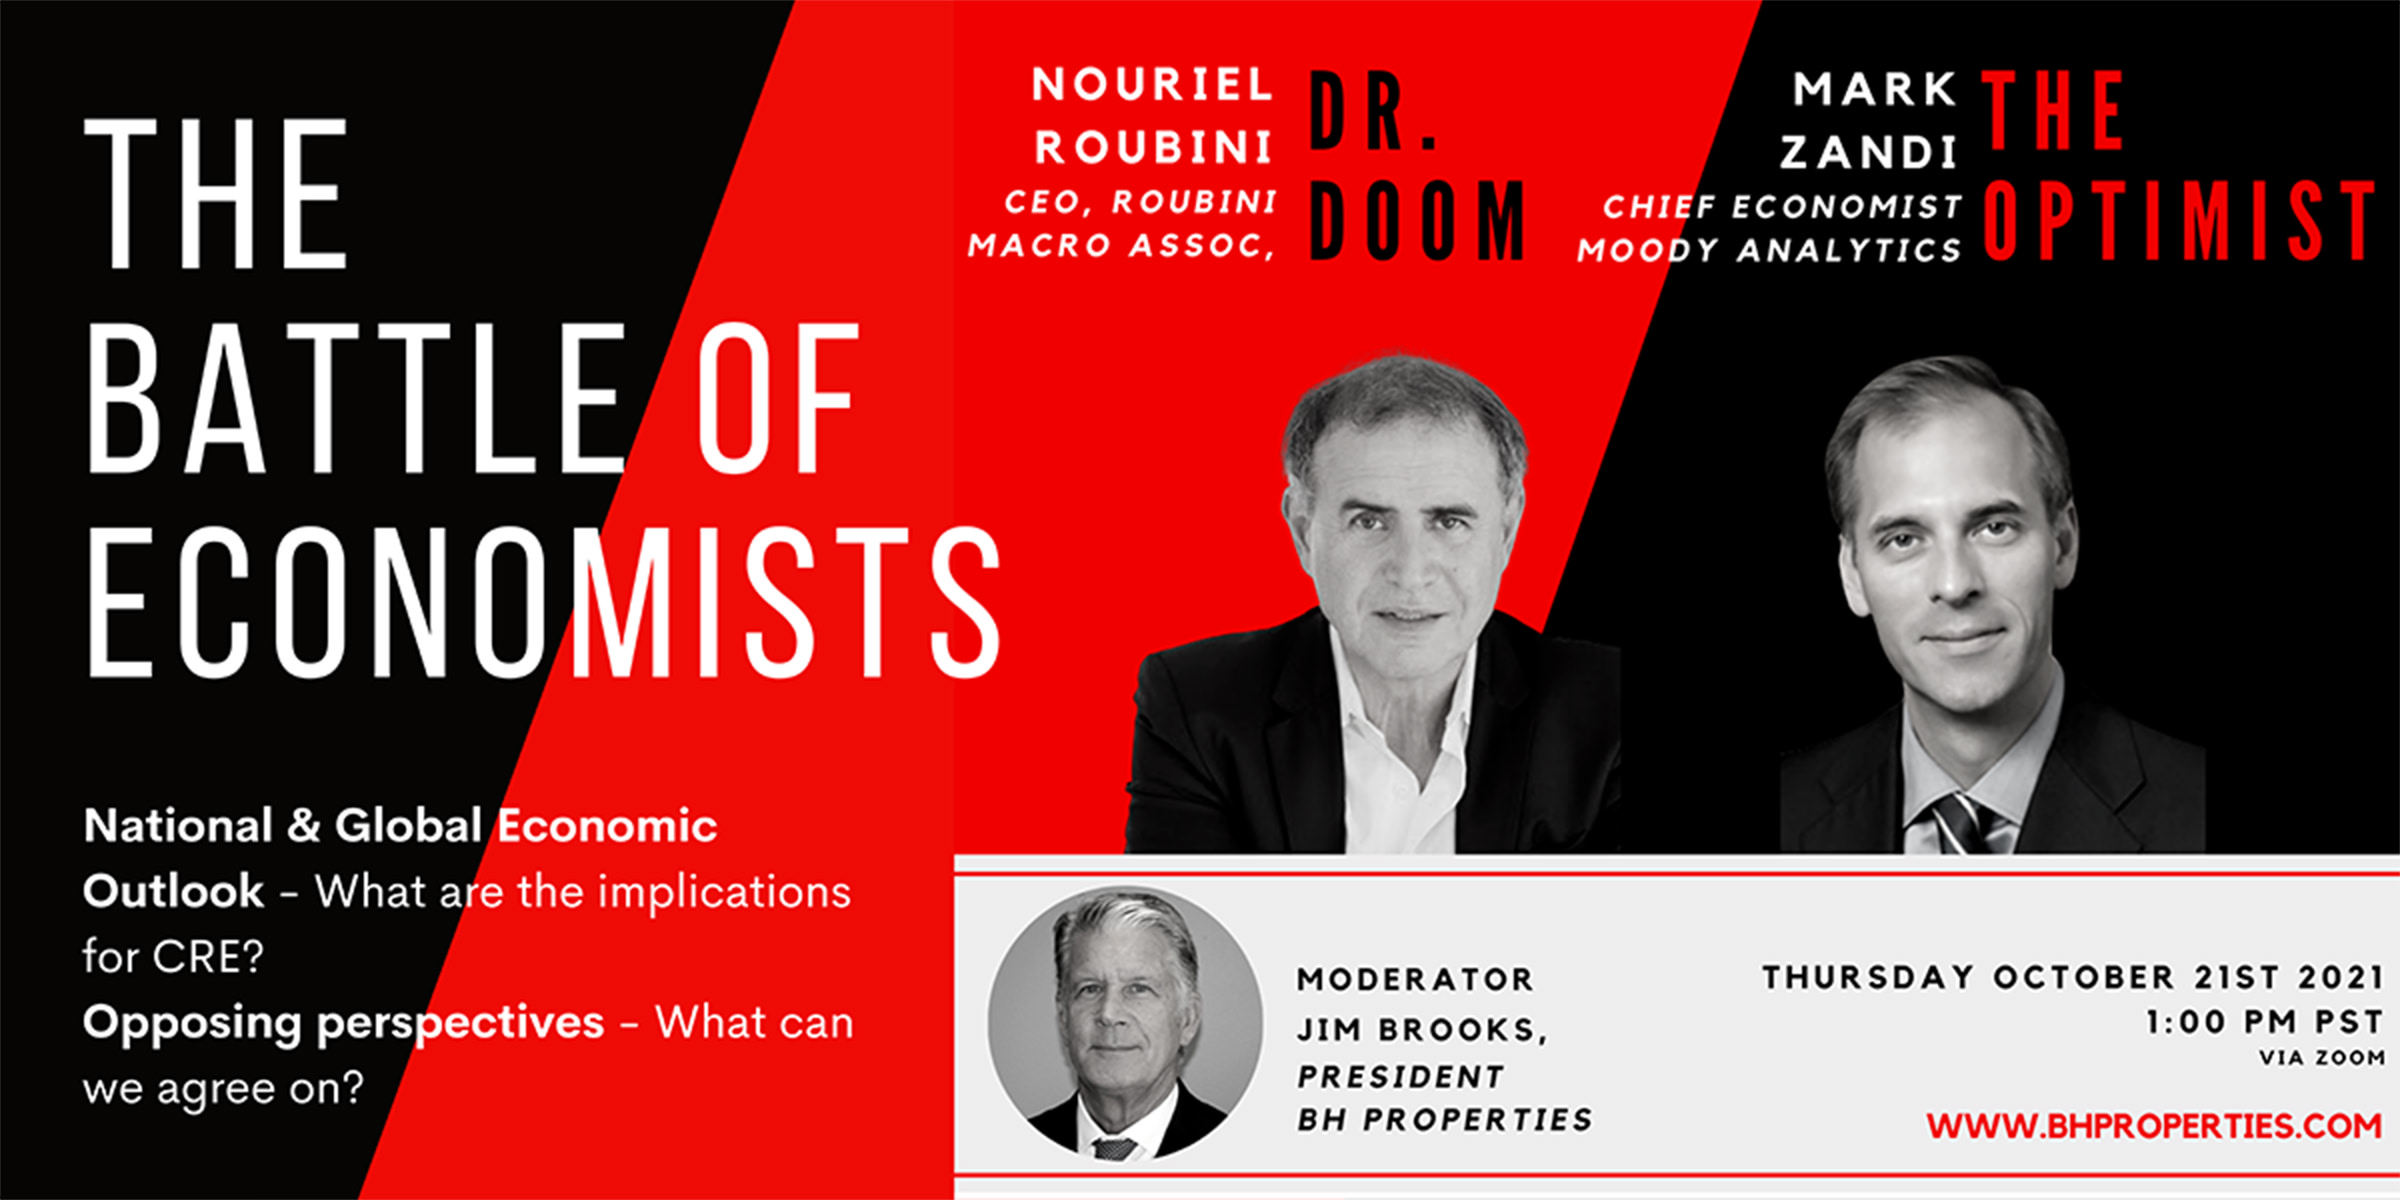 BH Properties Events - The Battle of Economists